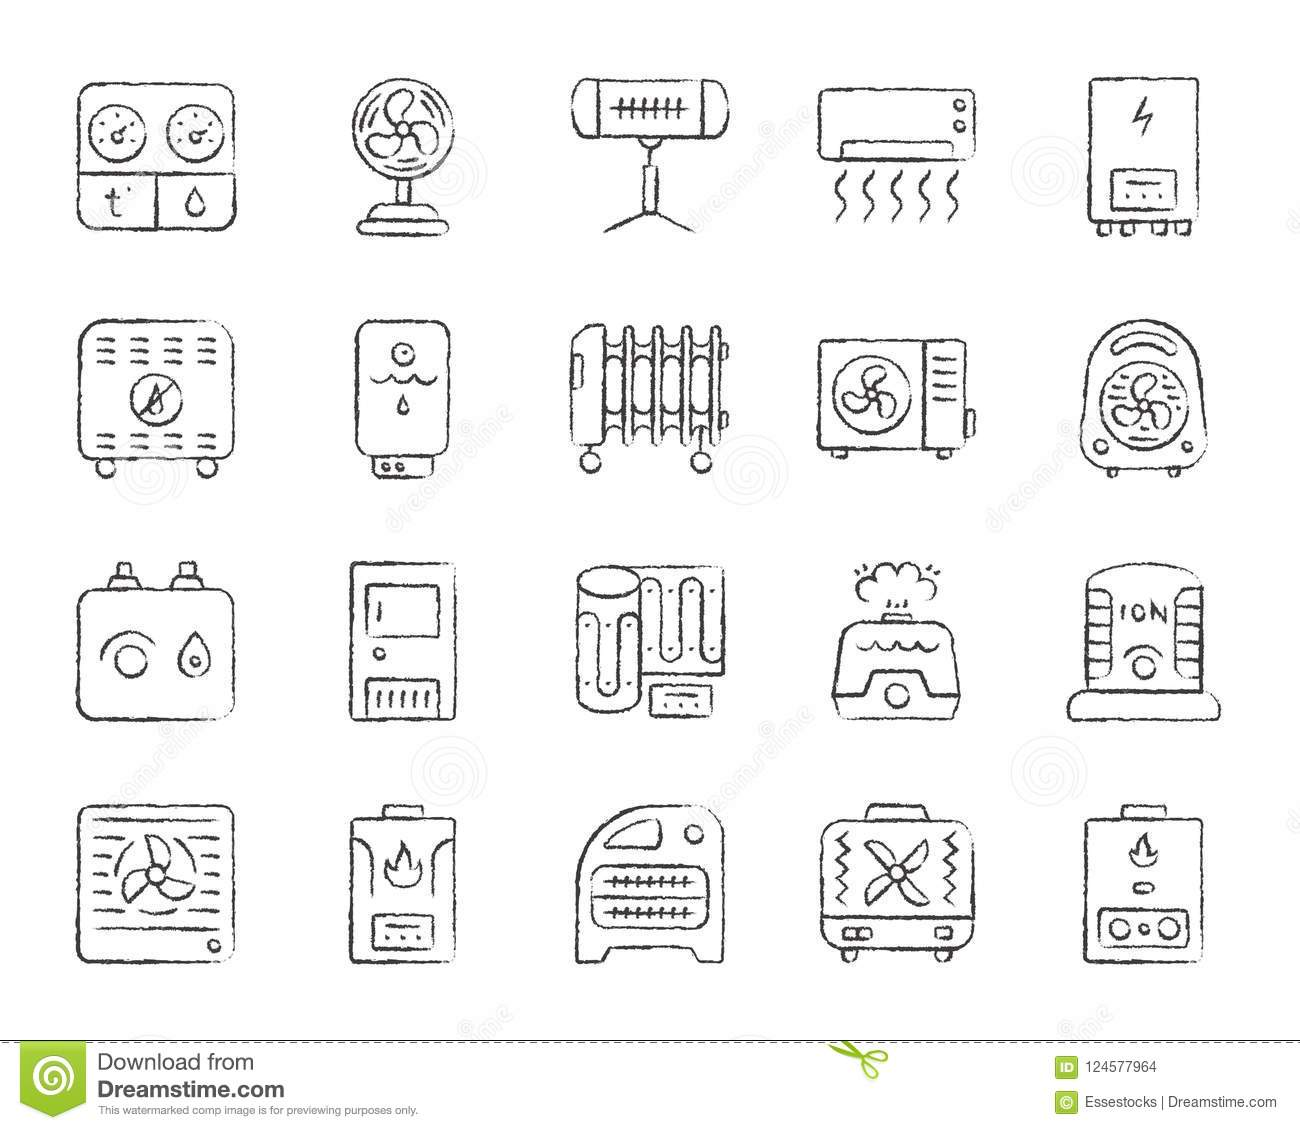 Hvac Drawing Images Free Download   Wiring Library